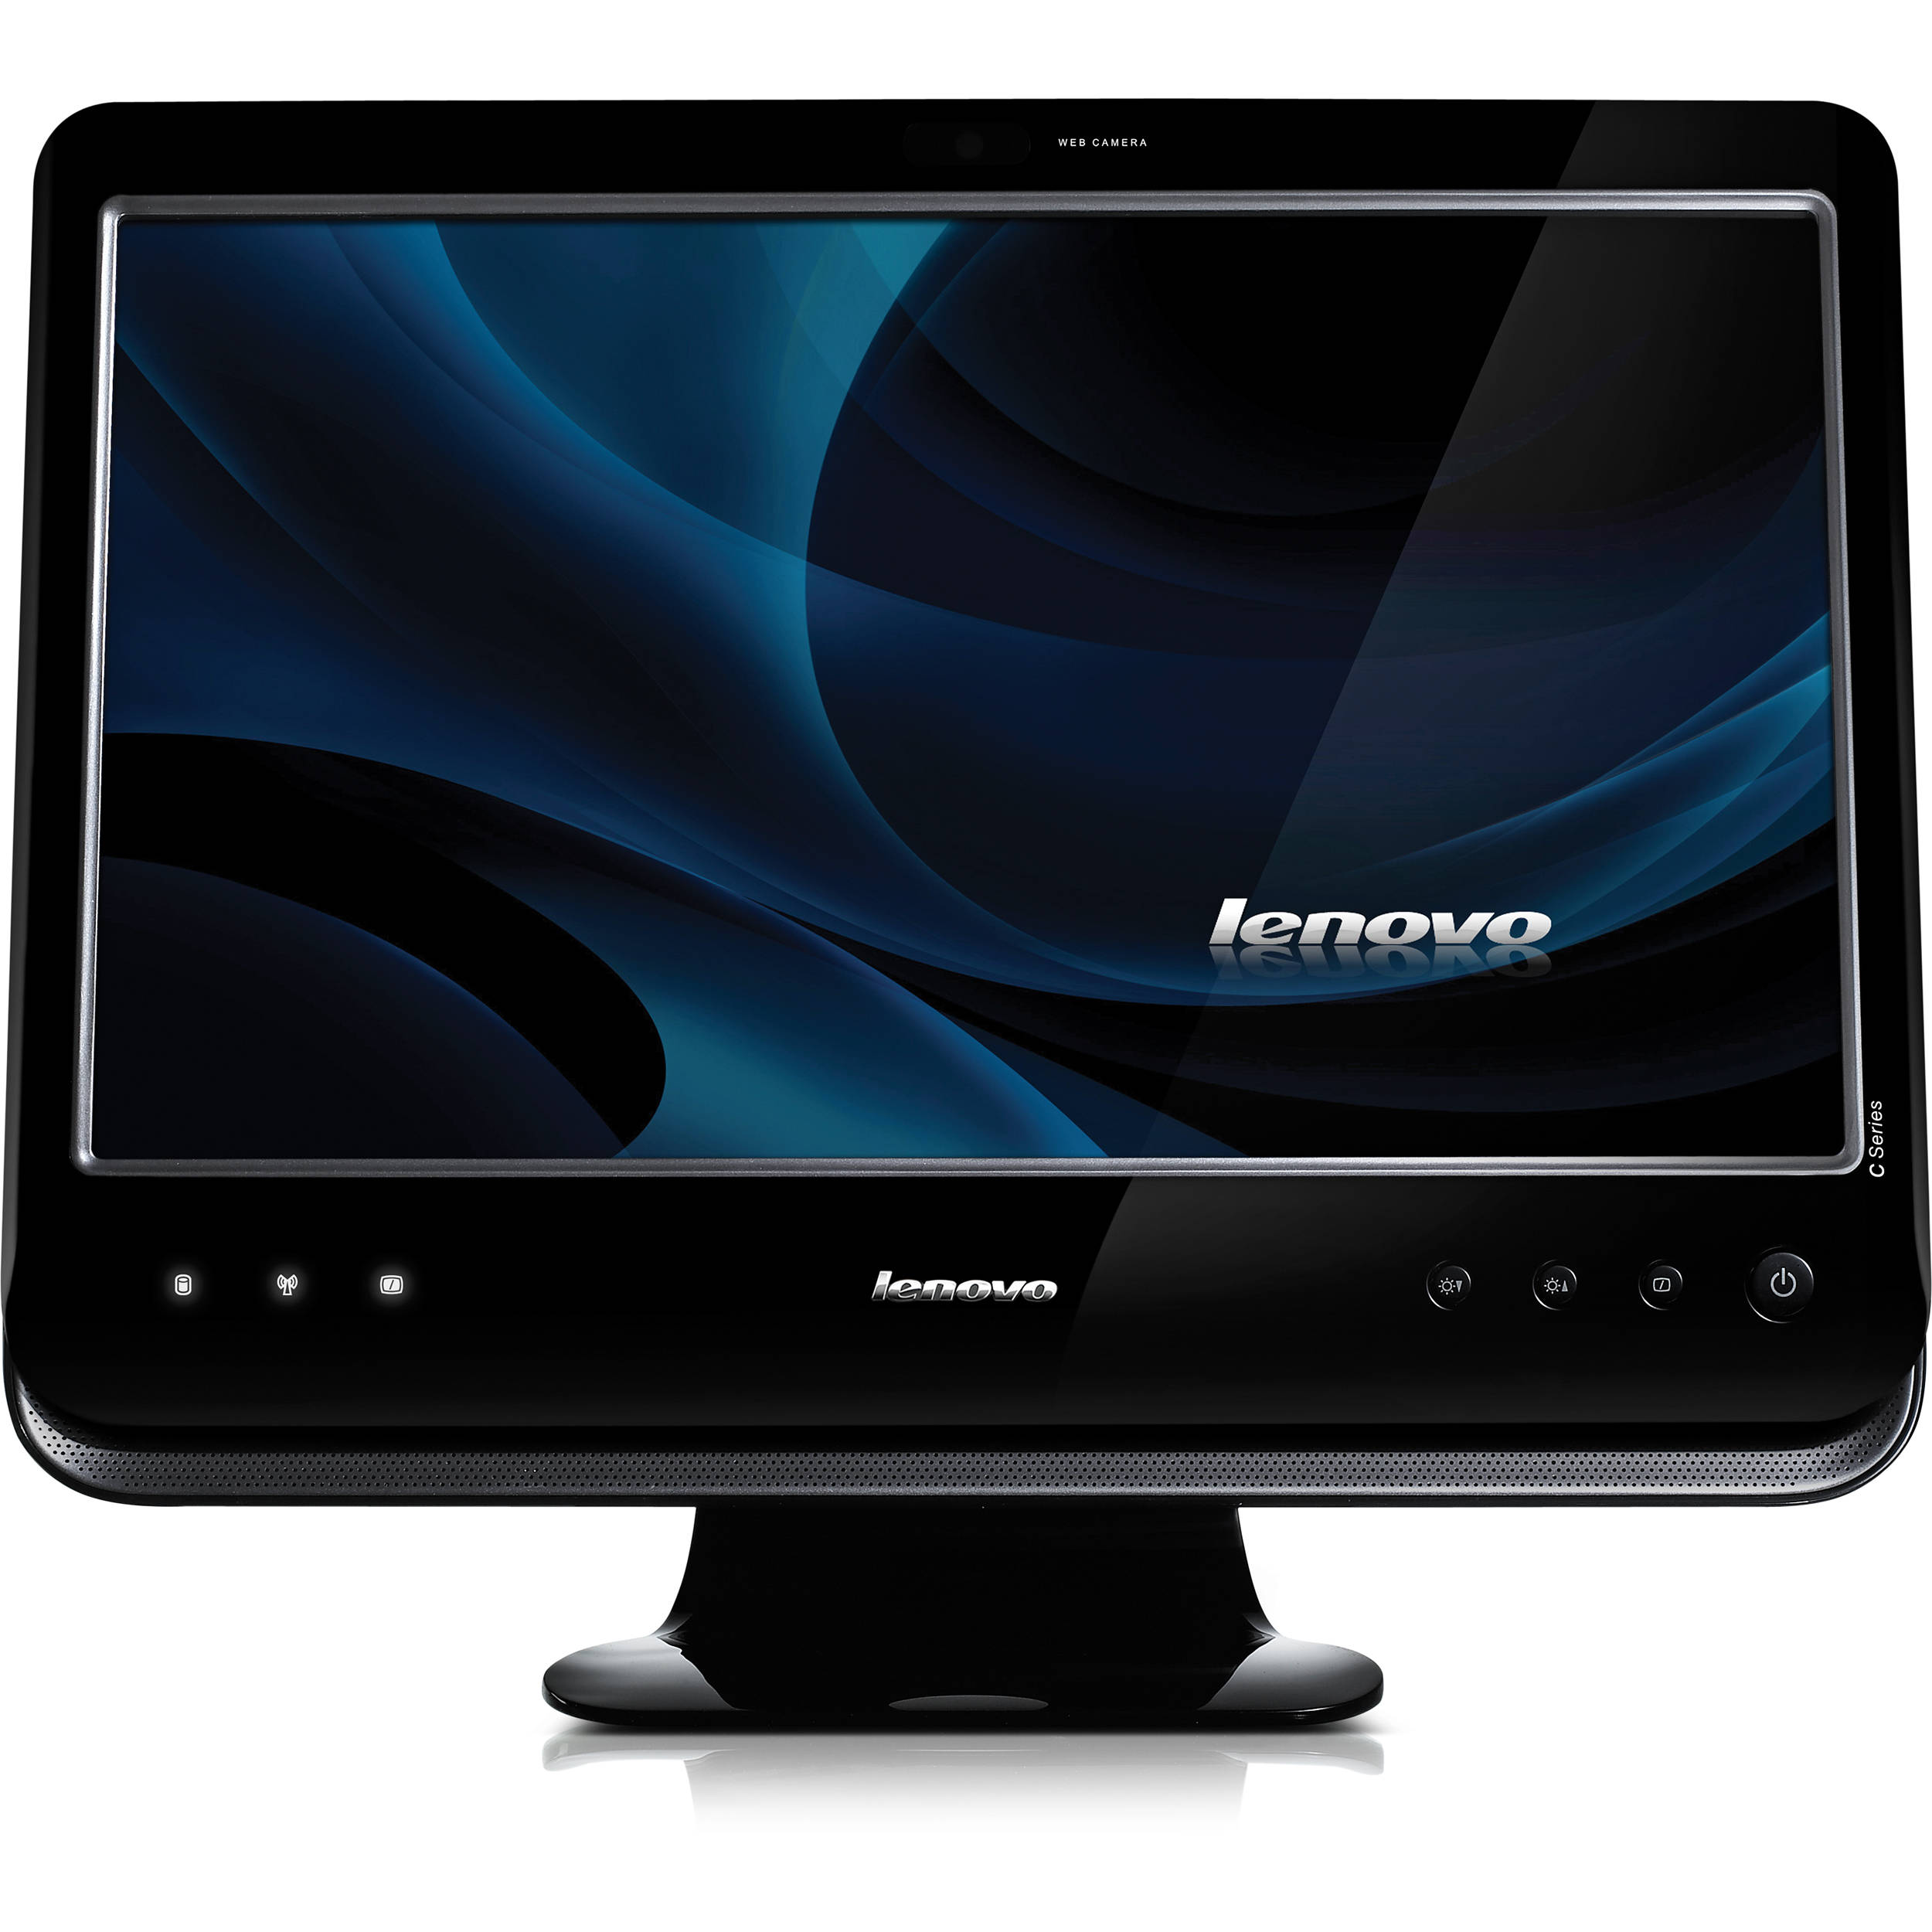 how to find lenovo windows home key